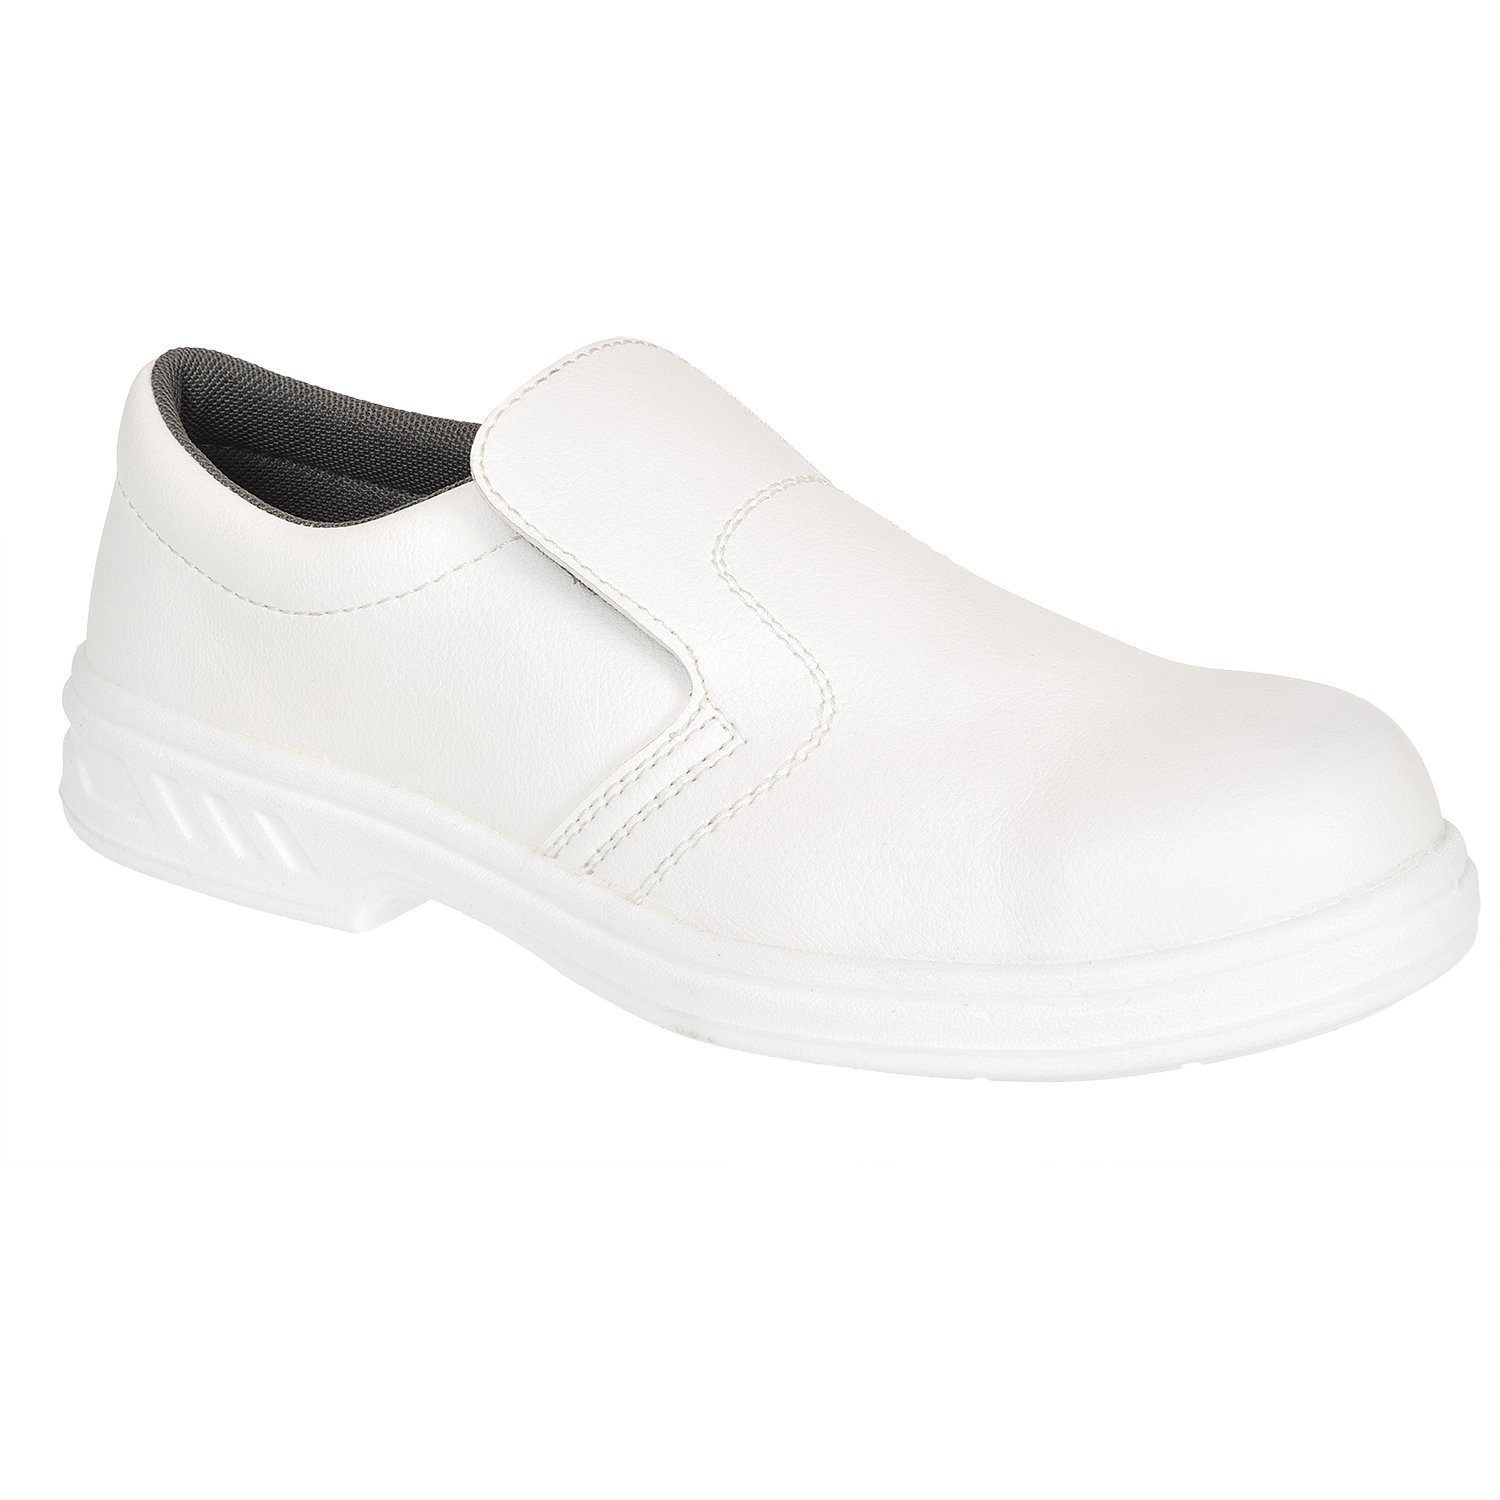 TALLA 36. Portwest FW81 - Slip-On de seguridad S2 Zapato, color Blanco, talla 36